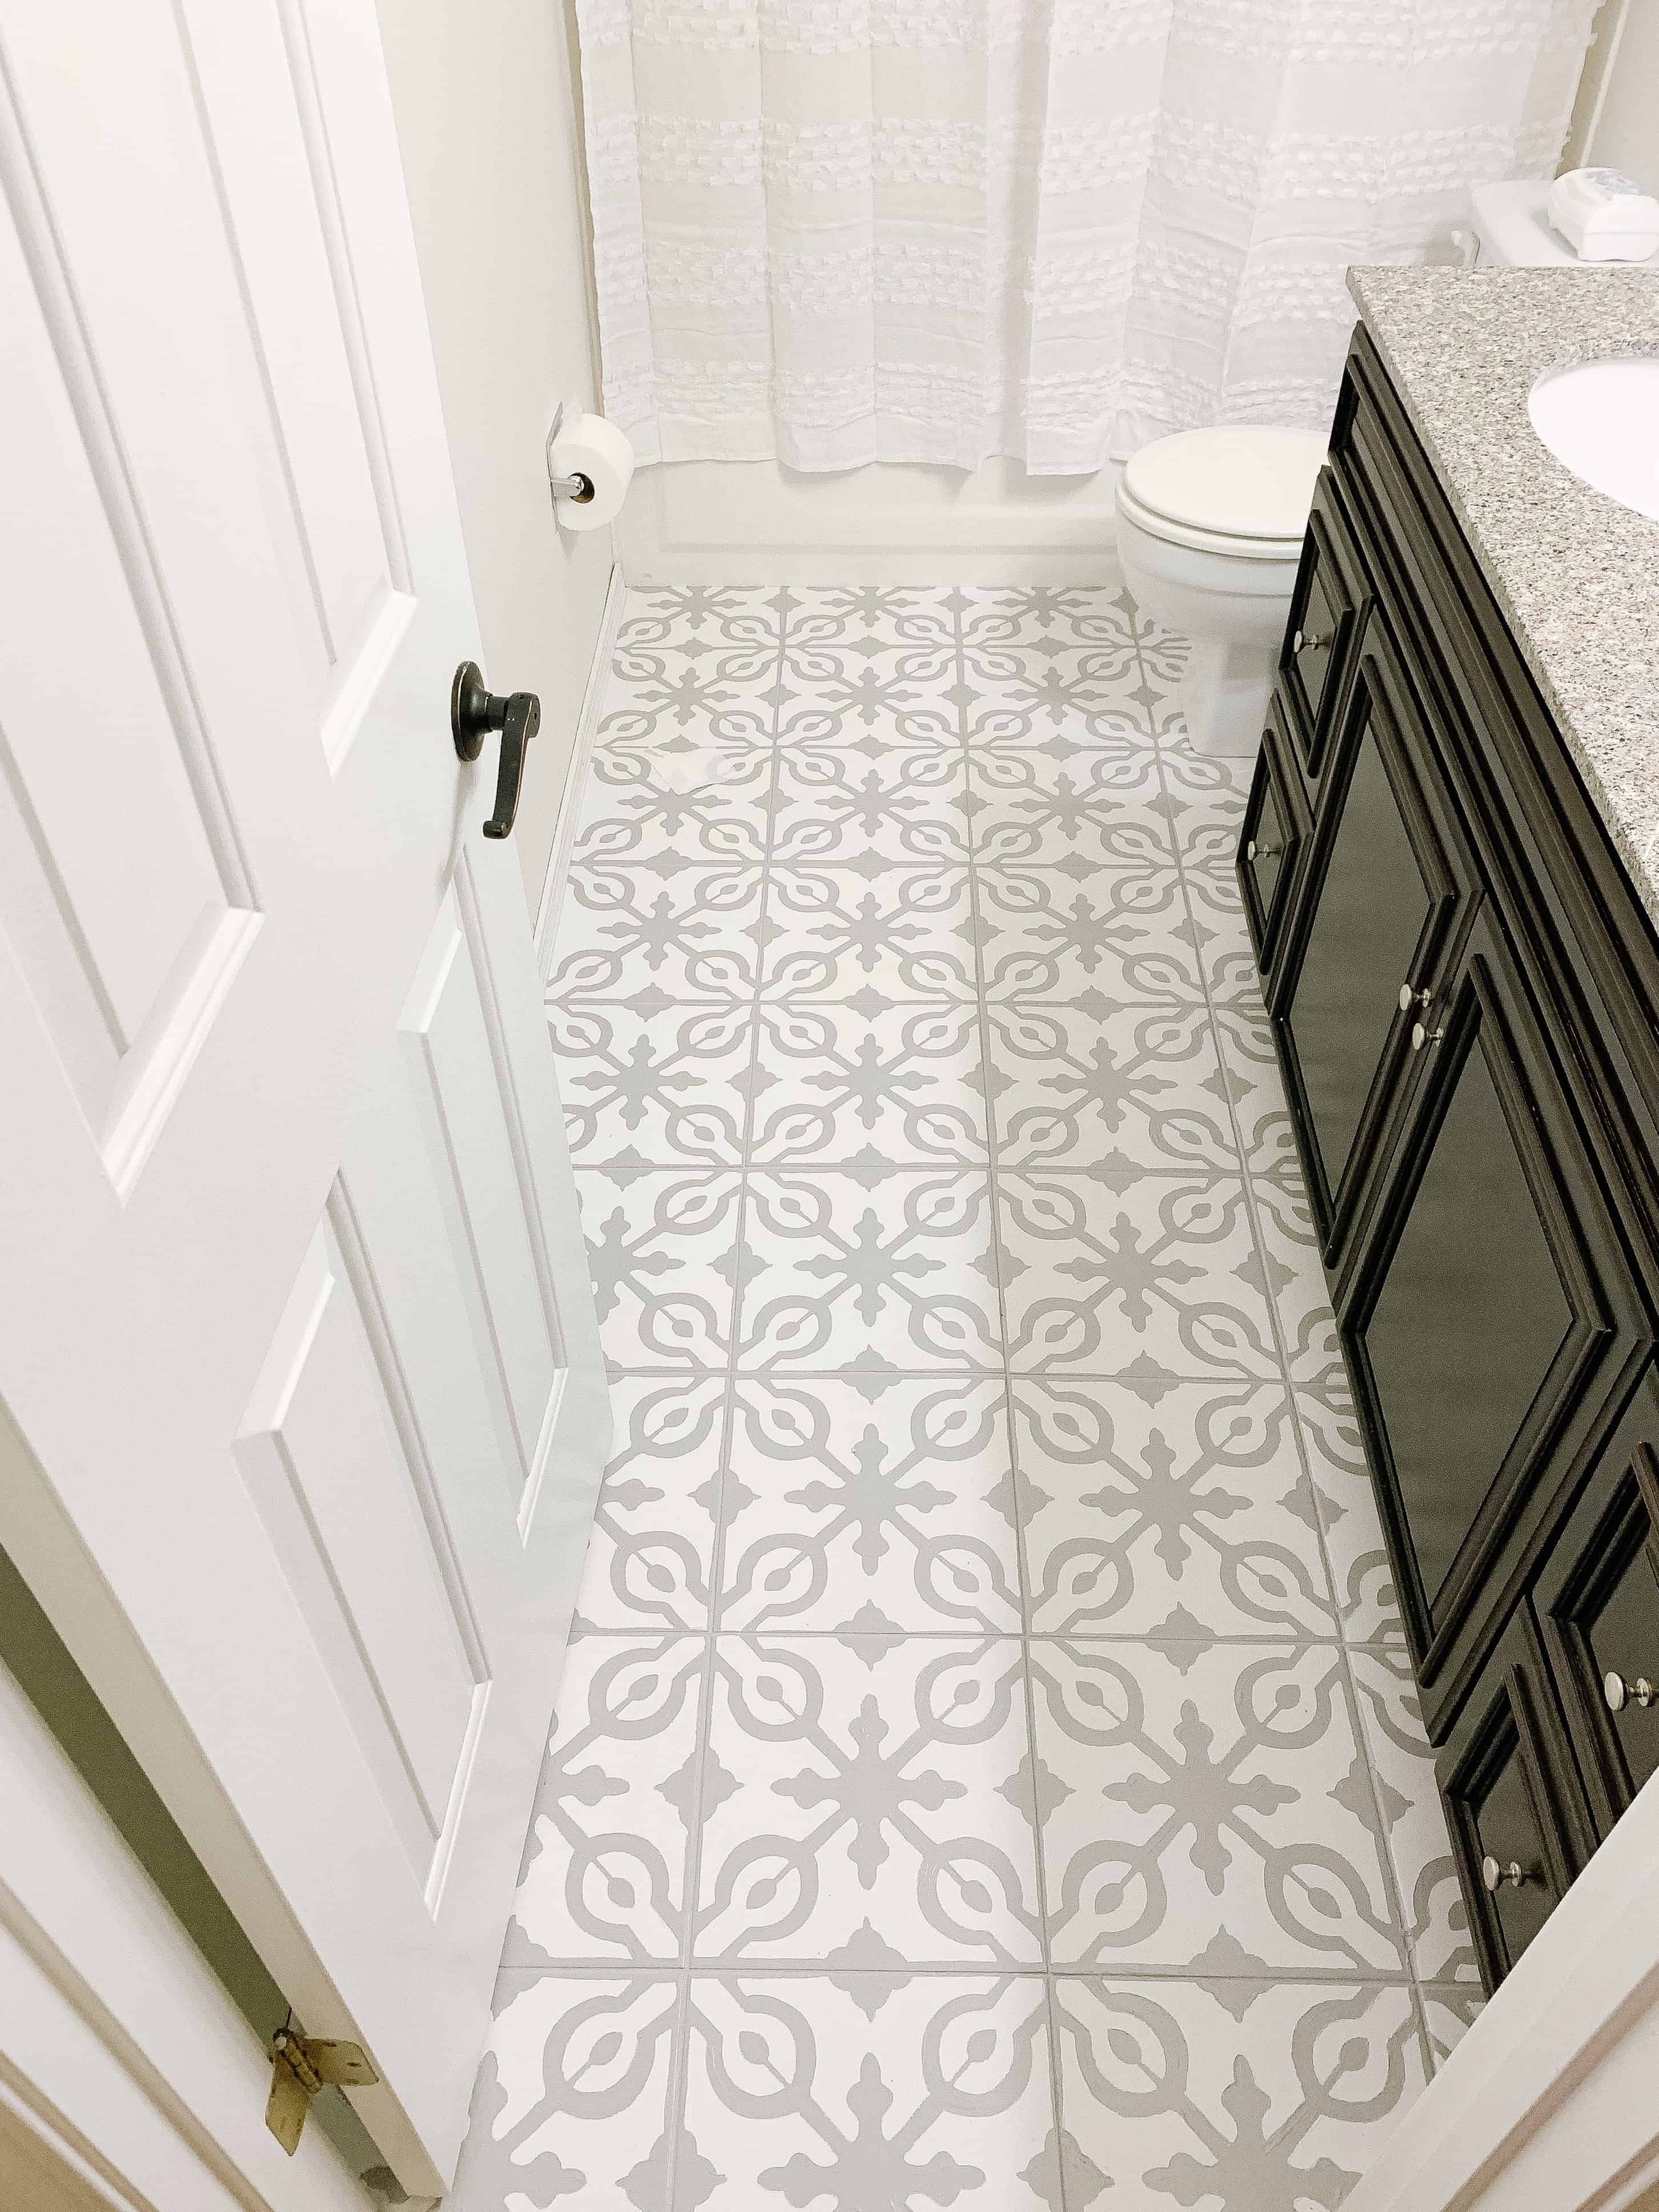 View of painted tile floor grey and white